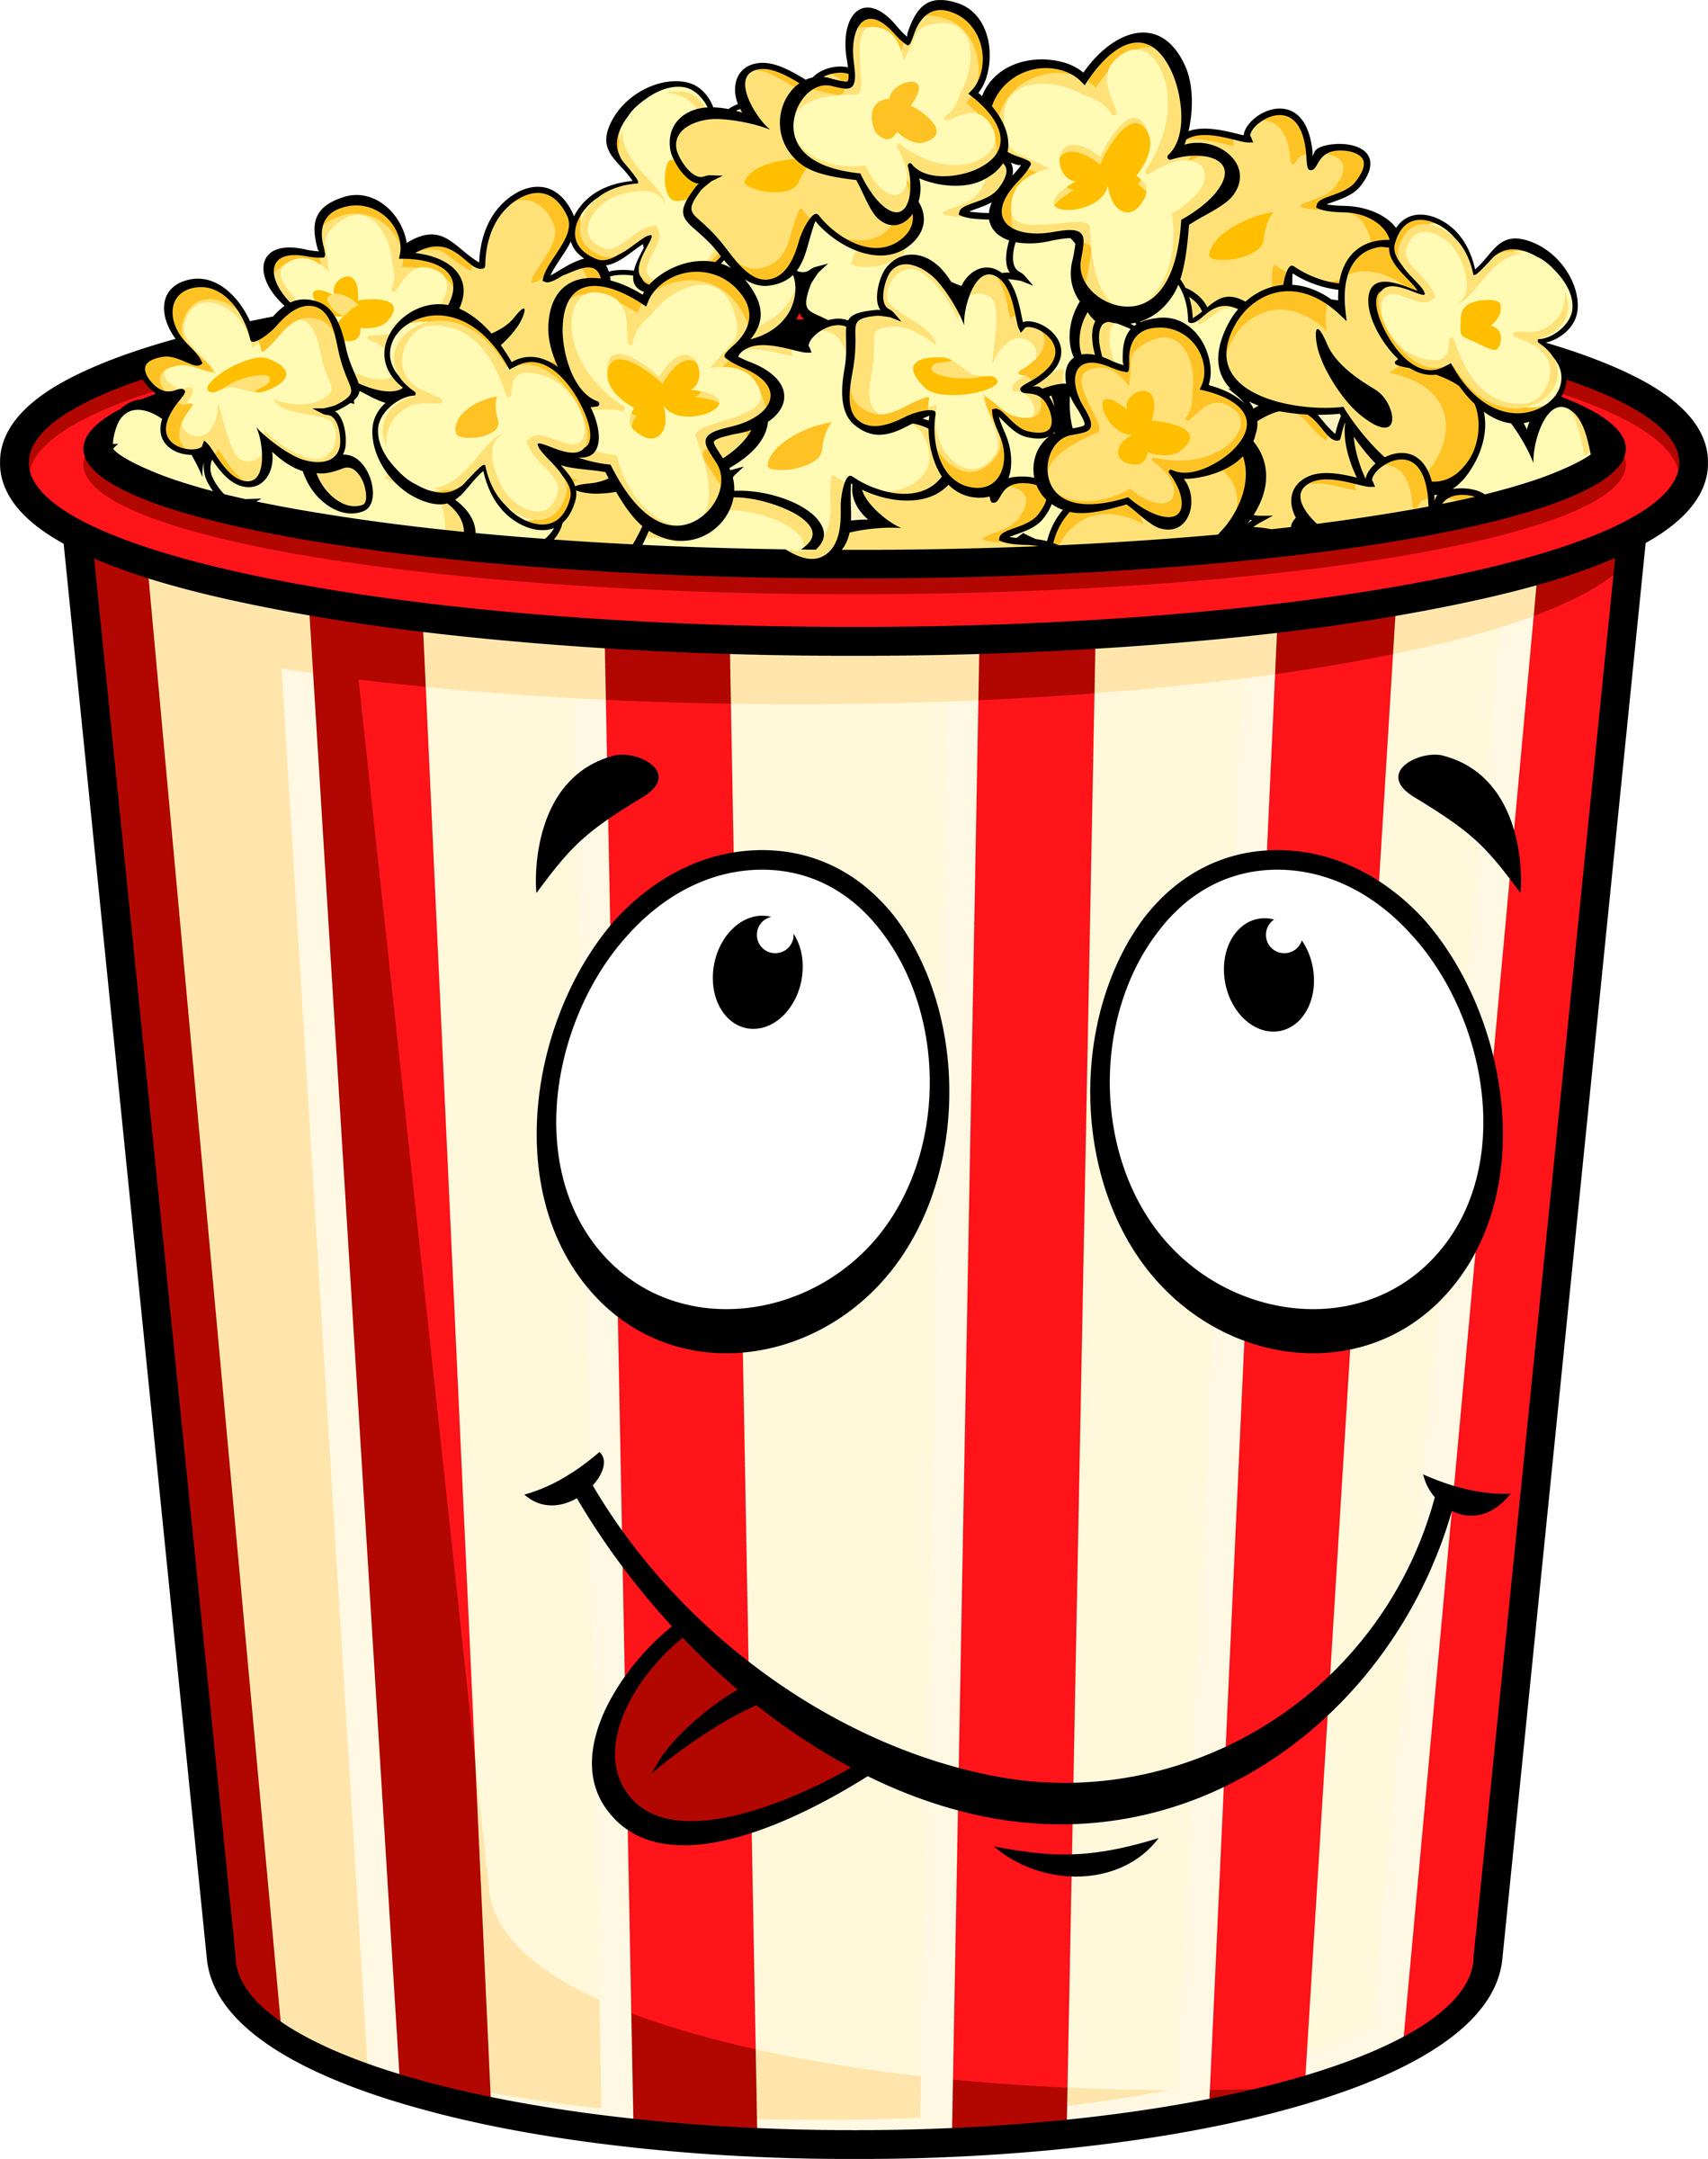 Popcorn Bag Clipart | Clipart Panda - Free Clipart Images